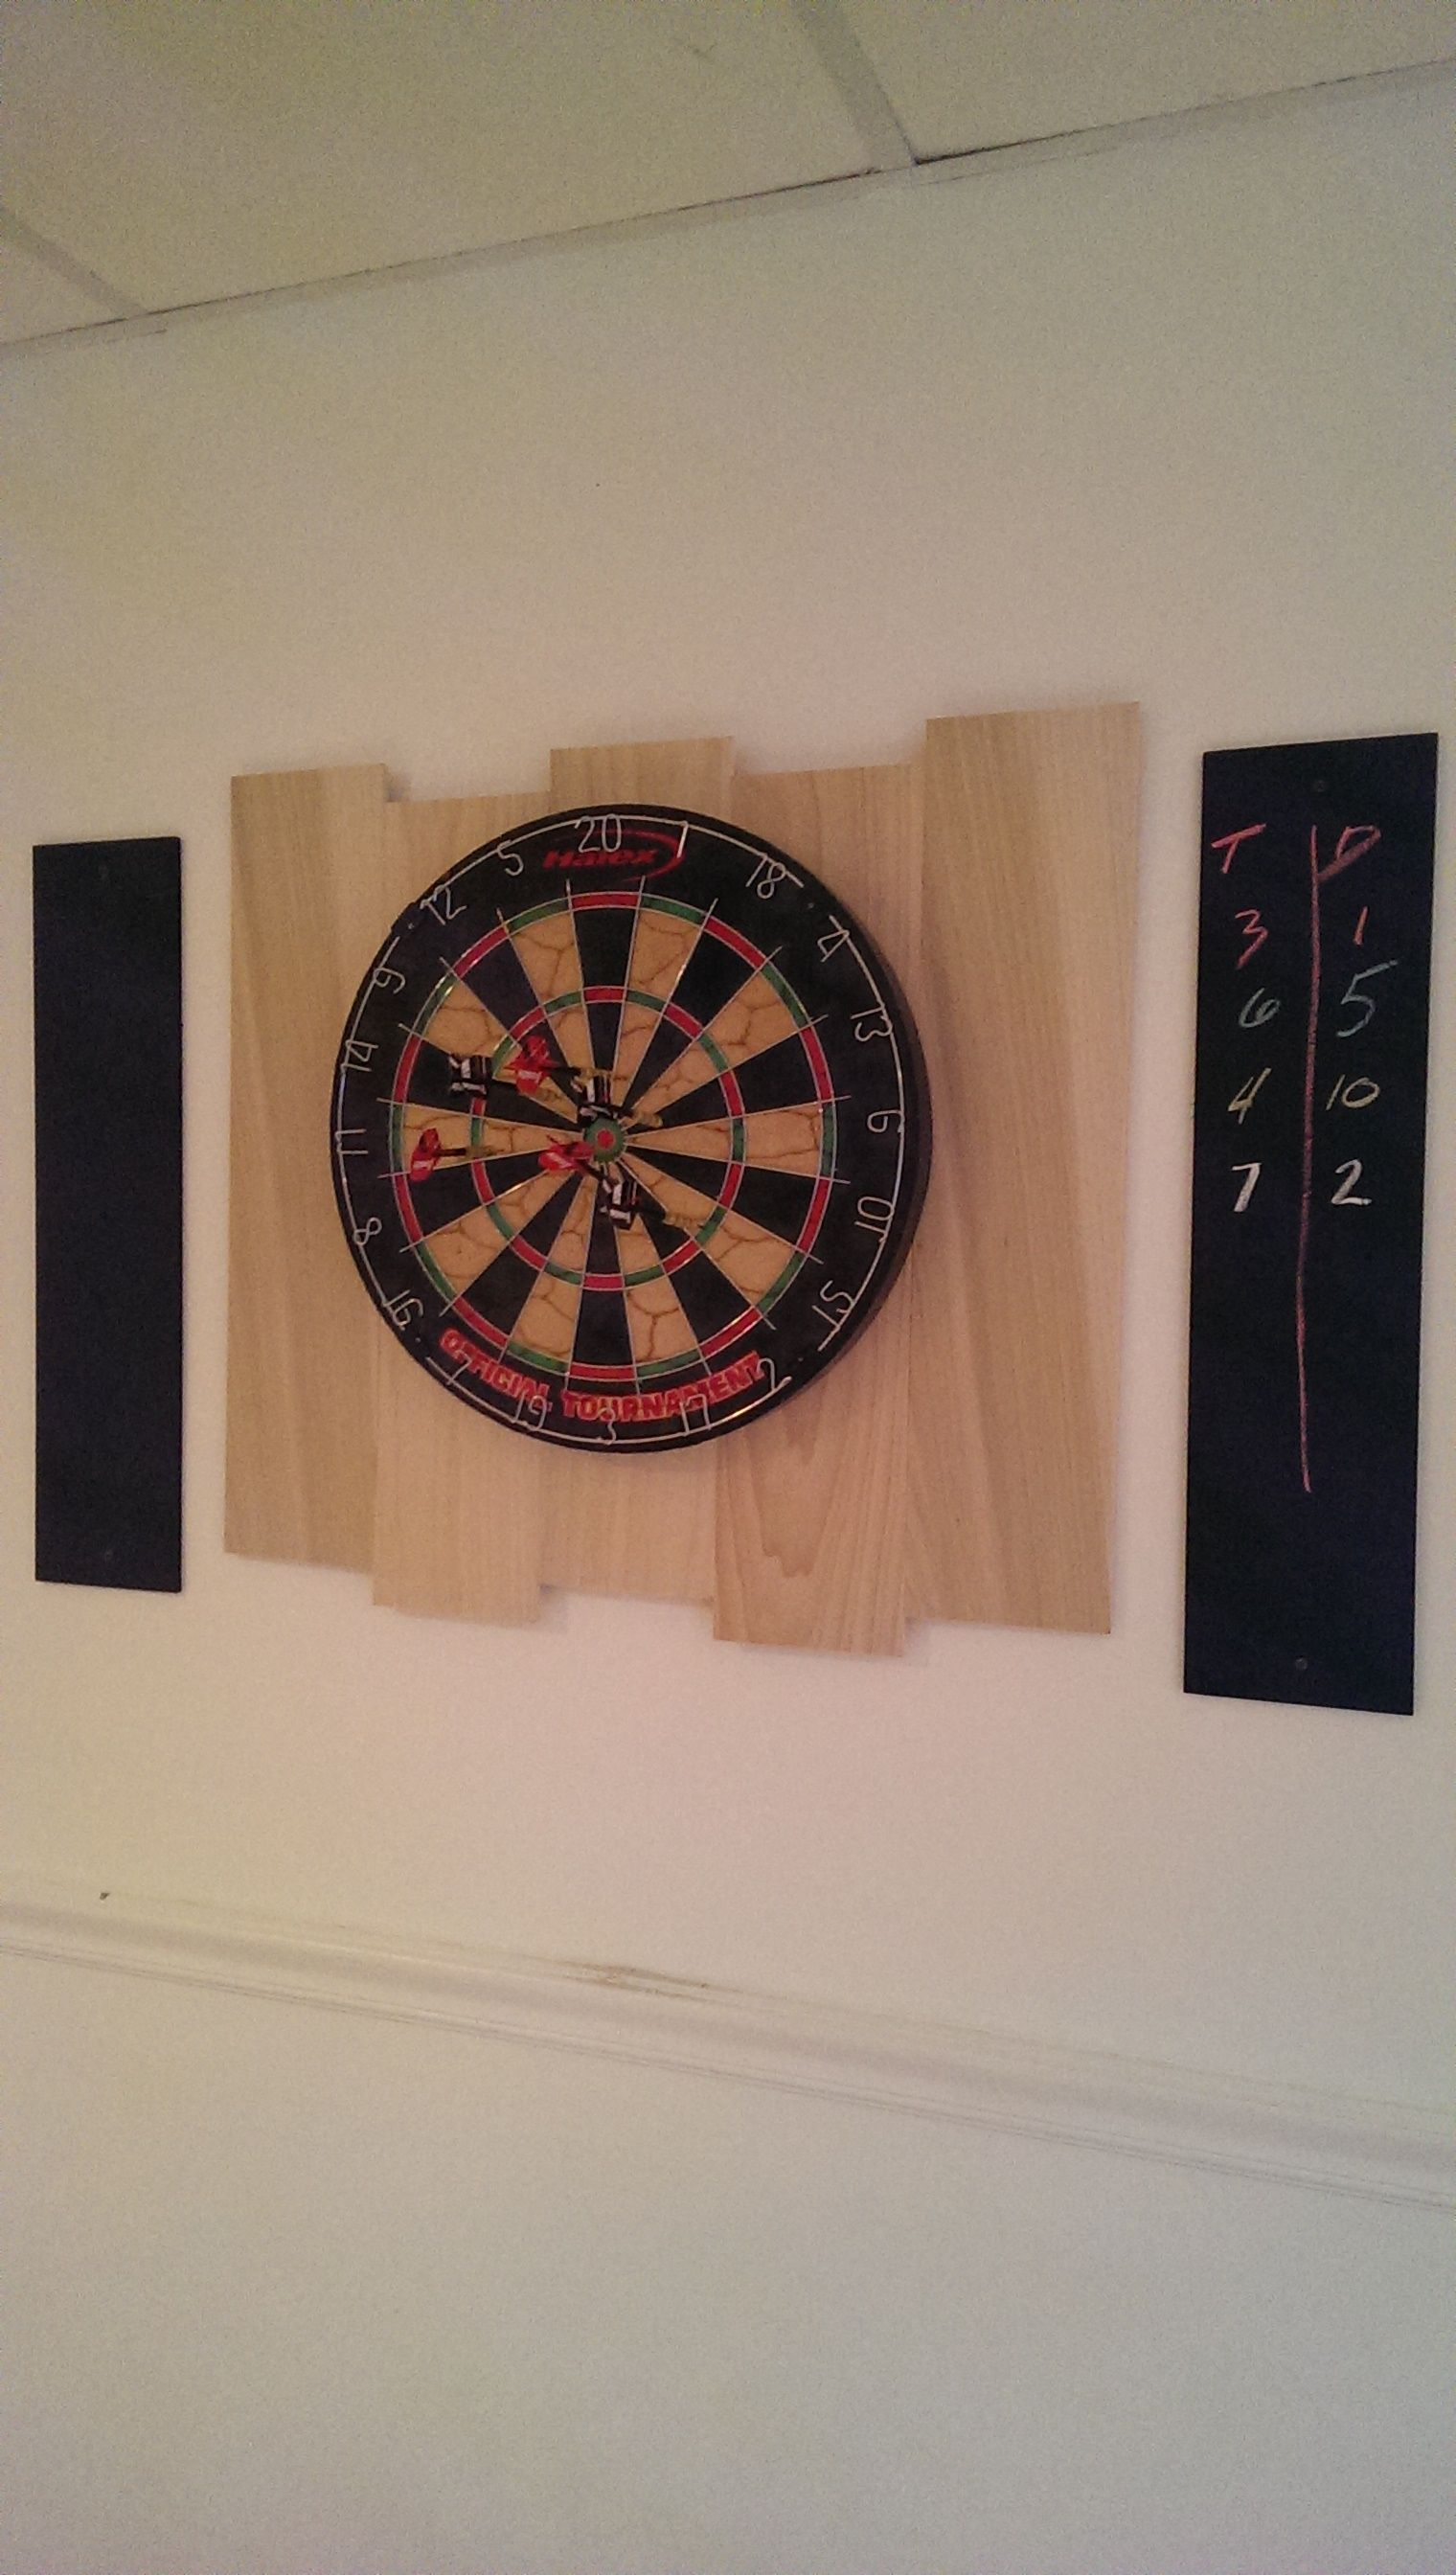 Homemade Dart Board Backing And Scoreboard Flechettes Jeu De Flechette Jeux